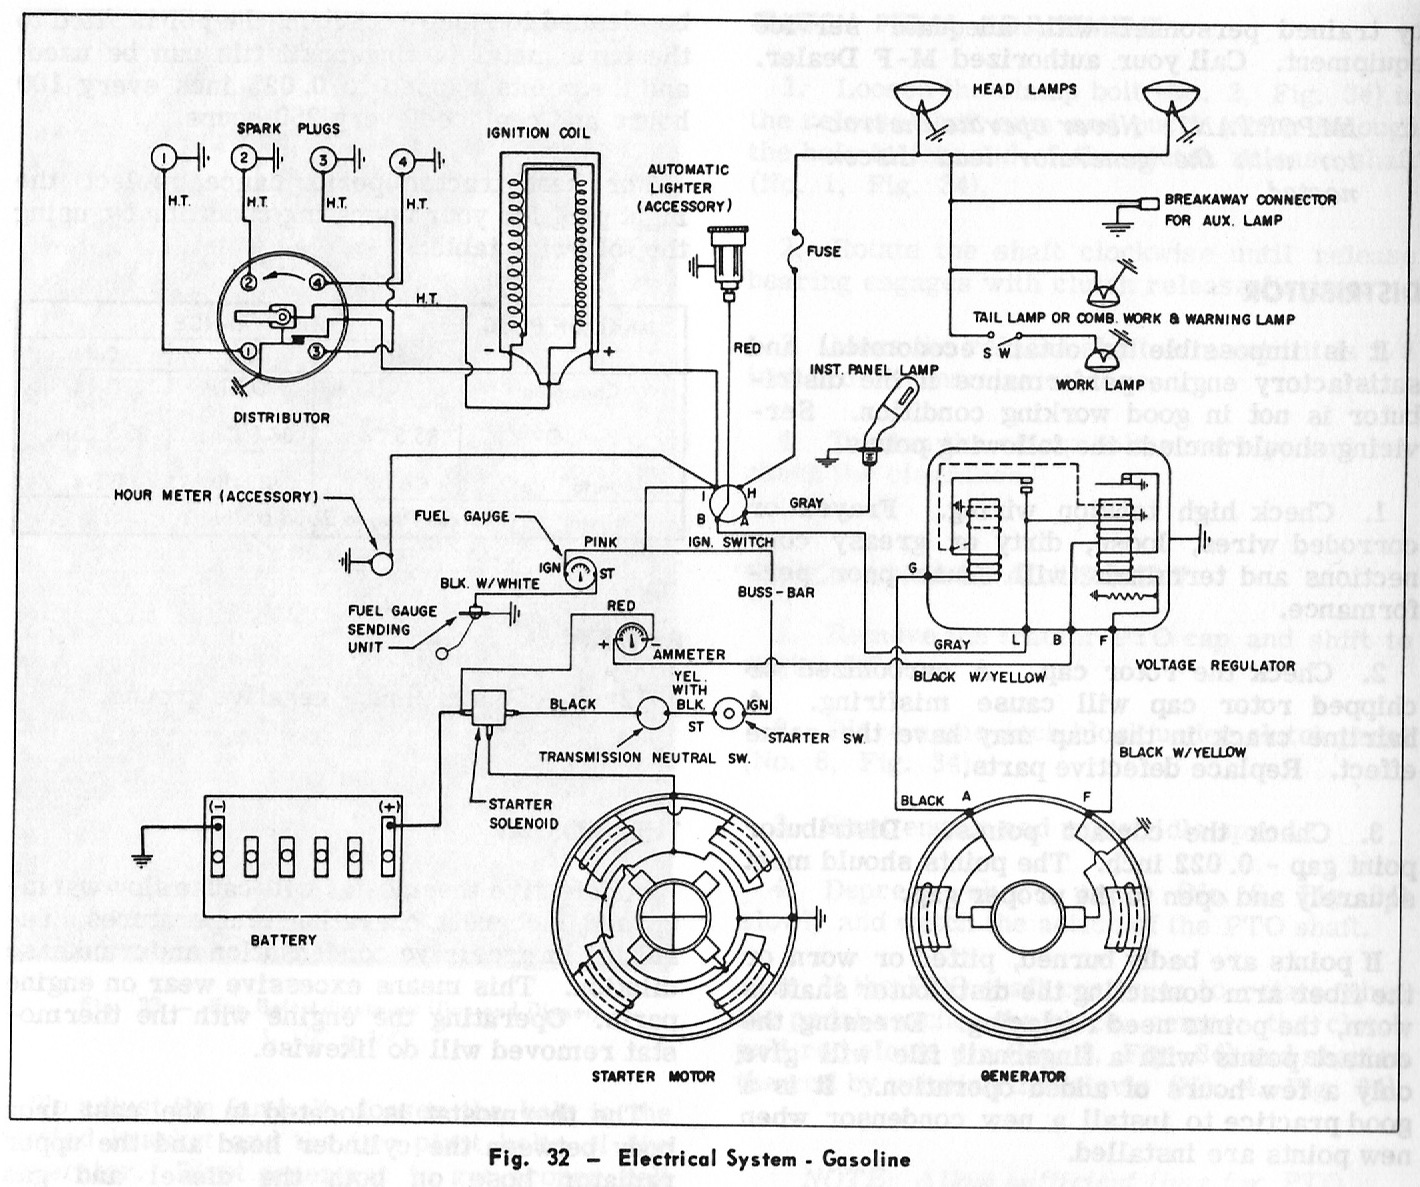 Wiring Diagram For Massey Ferguson 240